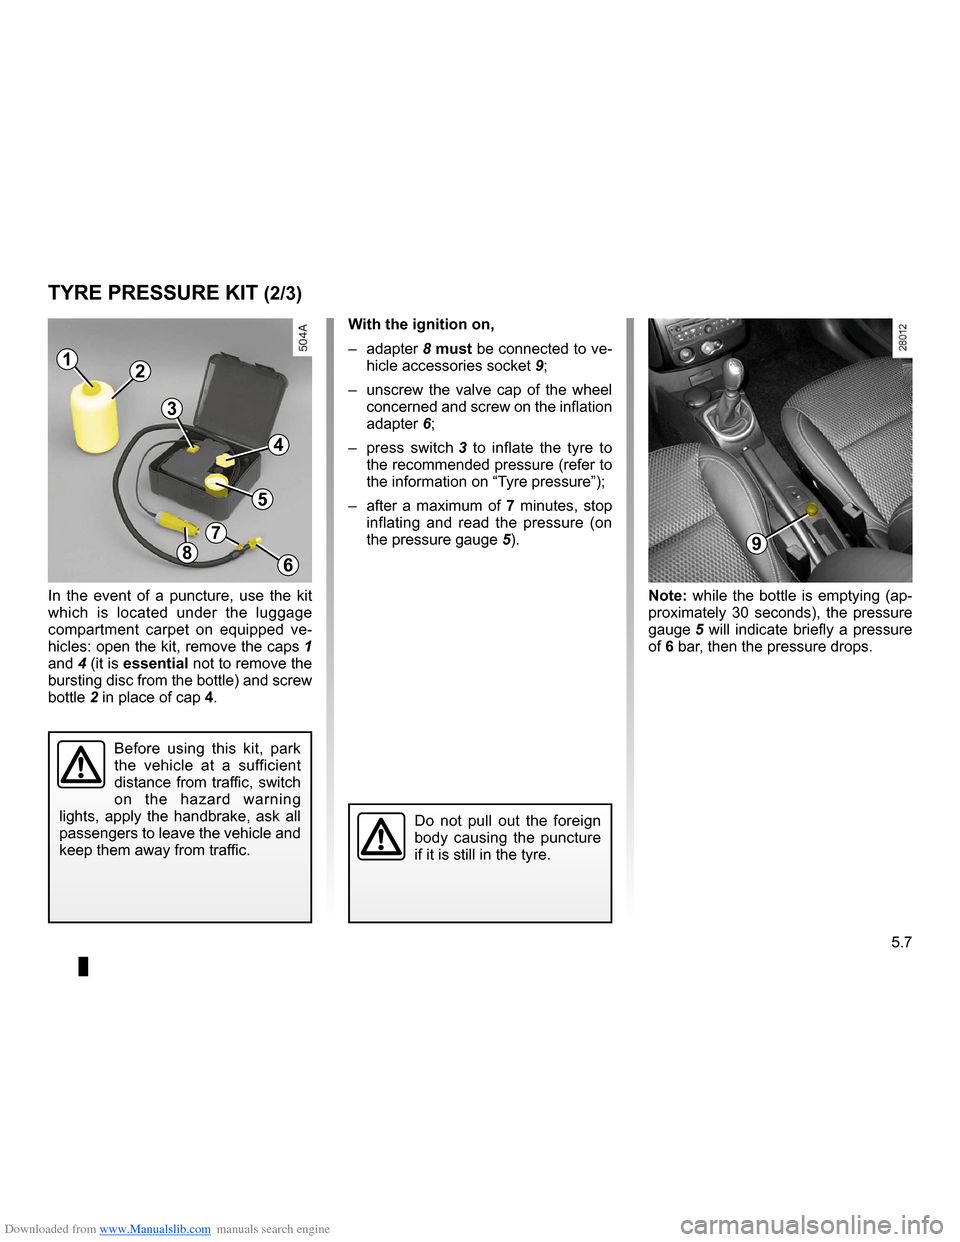 RENAULT CLIO 2009 X85 / 3.G Owners Manual, Page 195